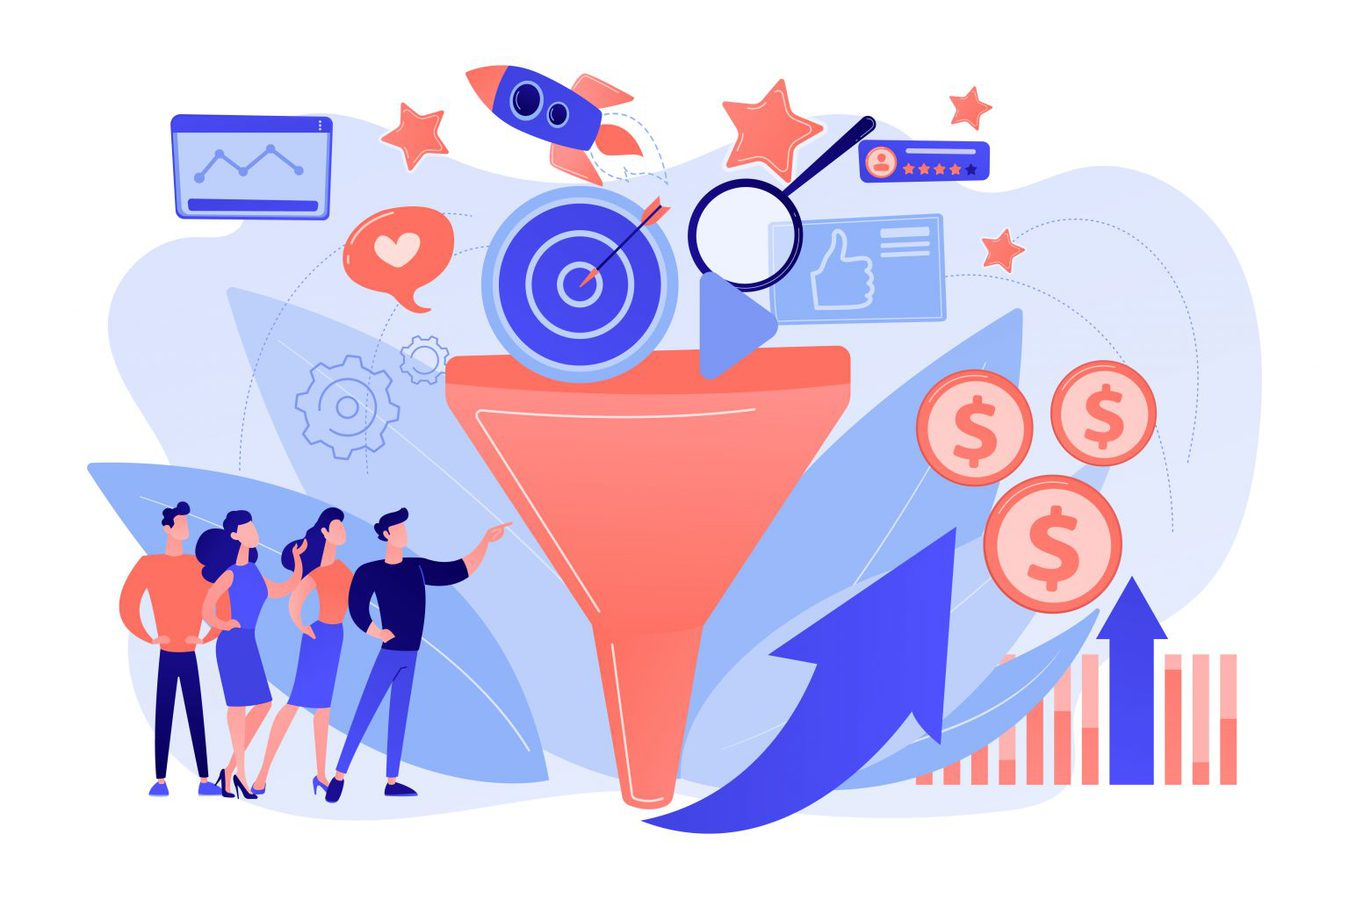 An illustration of a marketing funnel in a digital media context